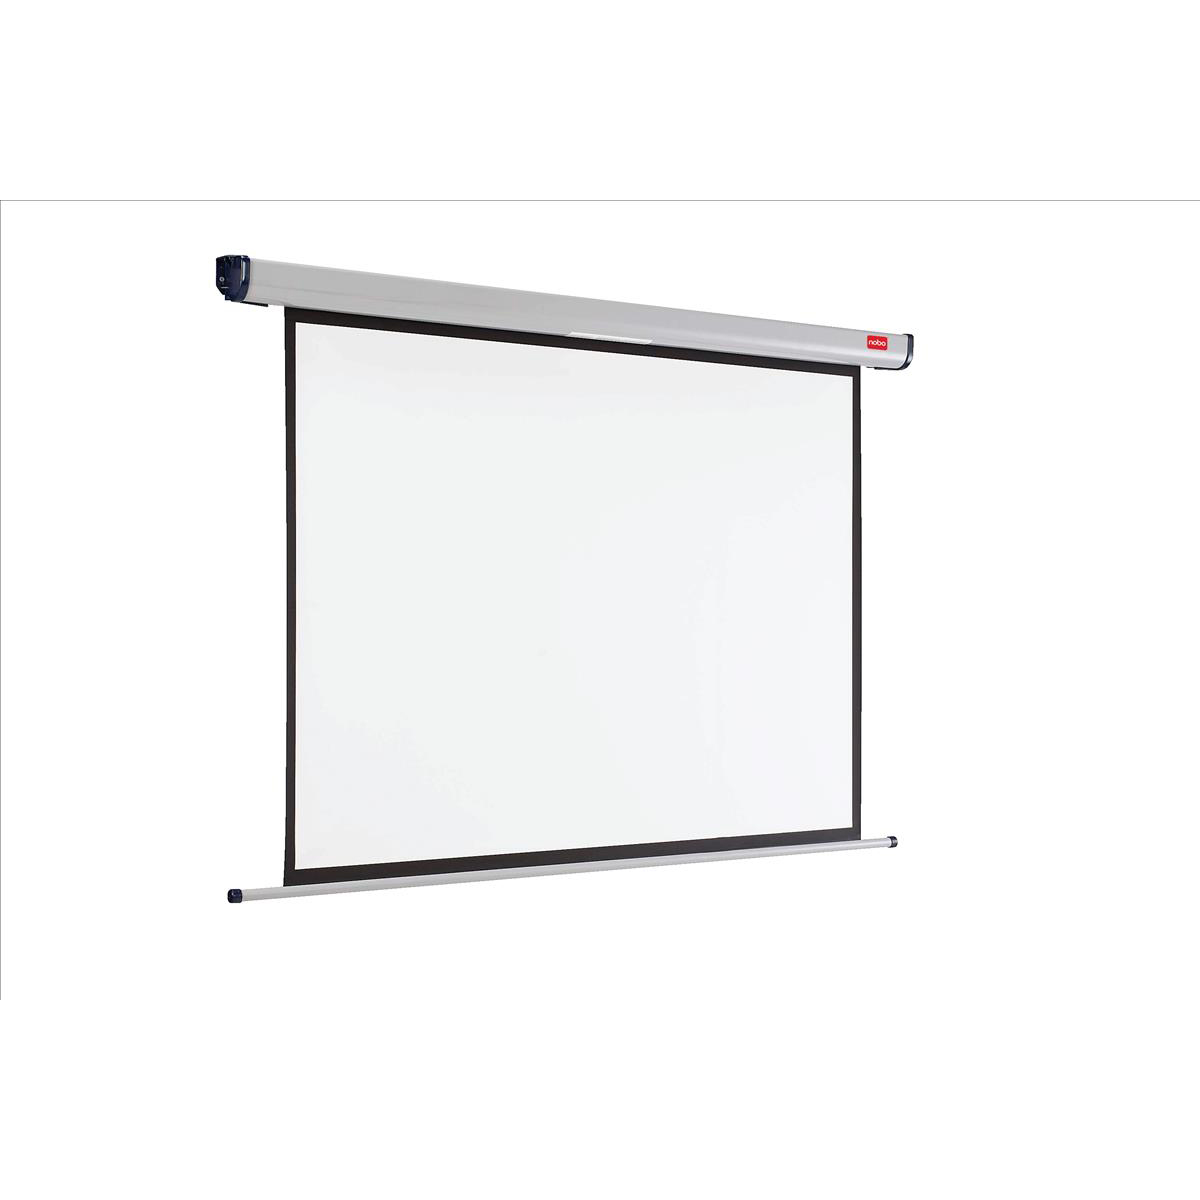 Nobo Wall Widescreen Projection Screen W1500xH1140 Ref 1902391W